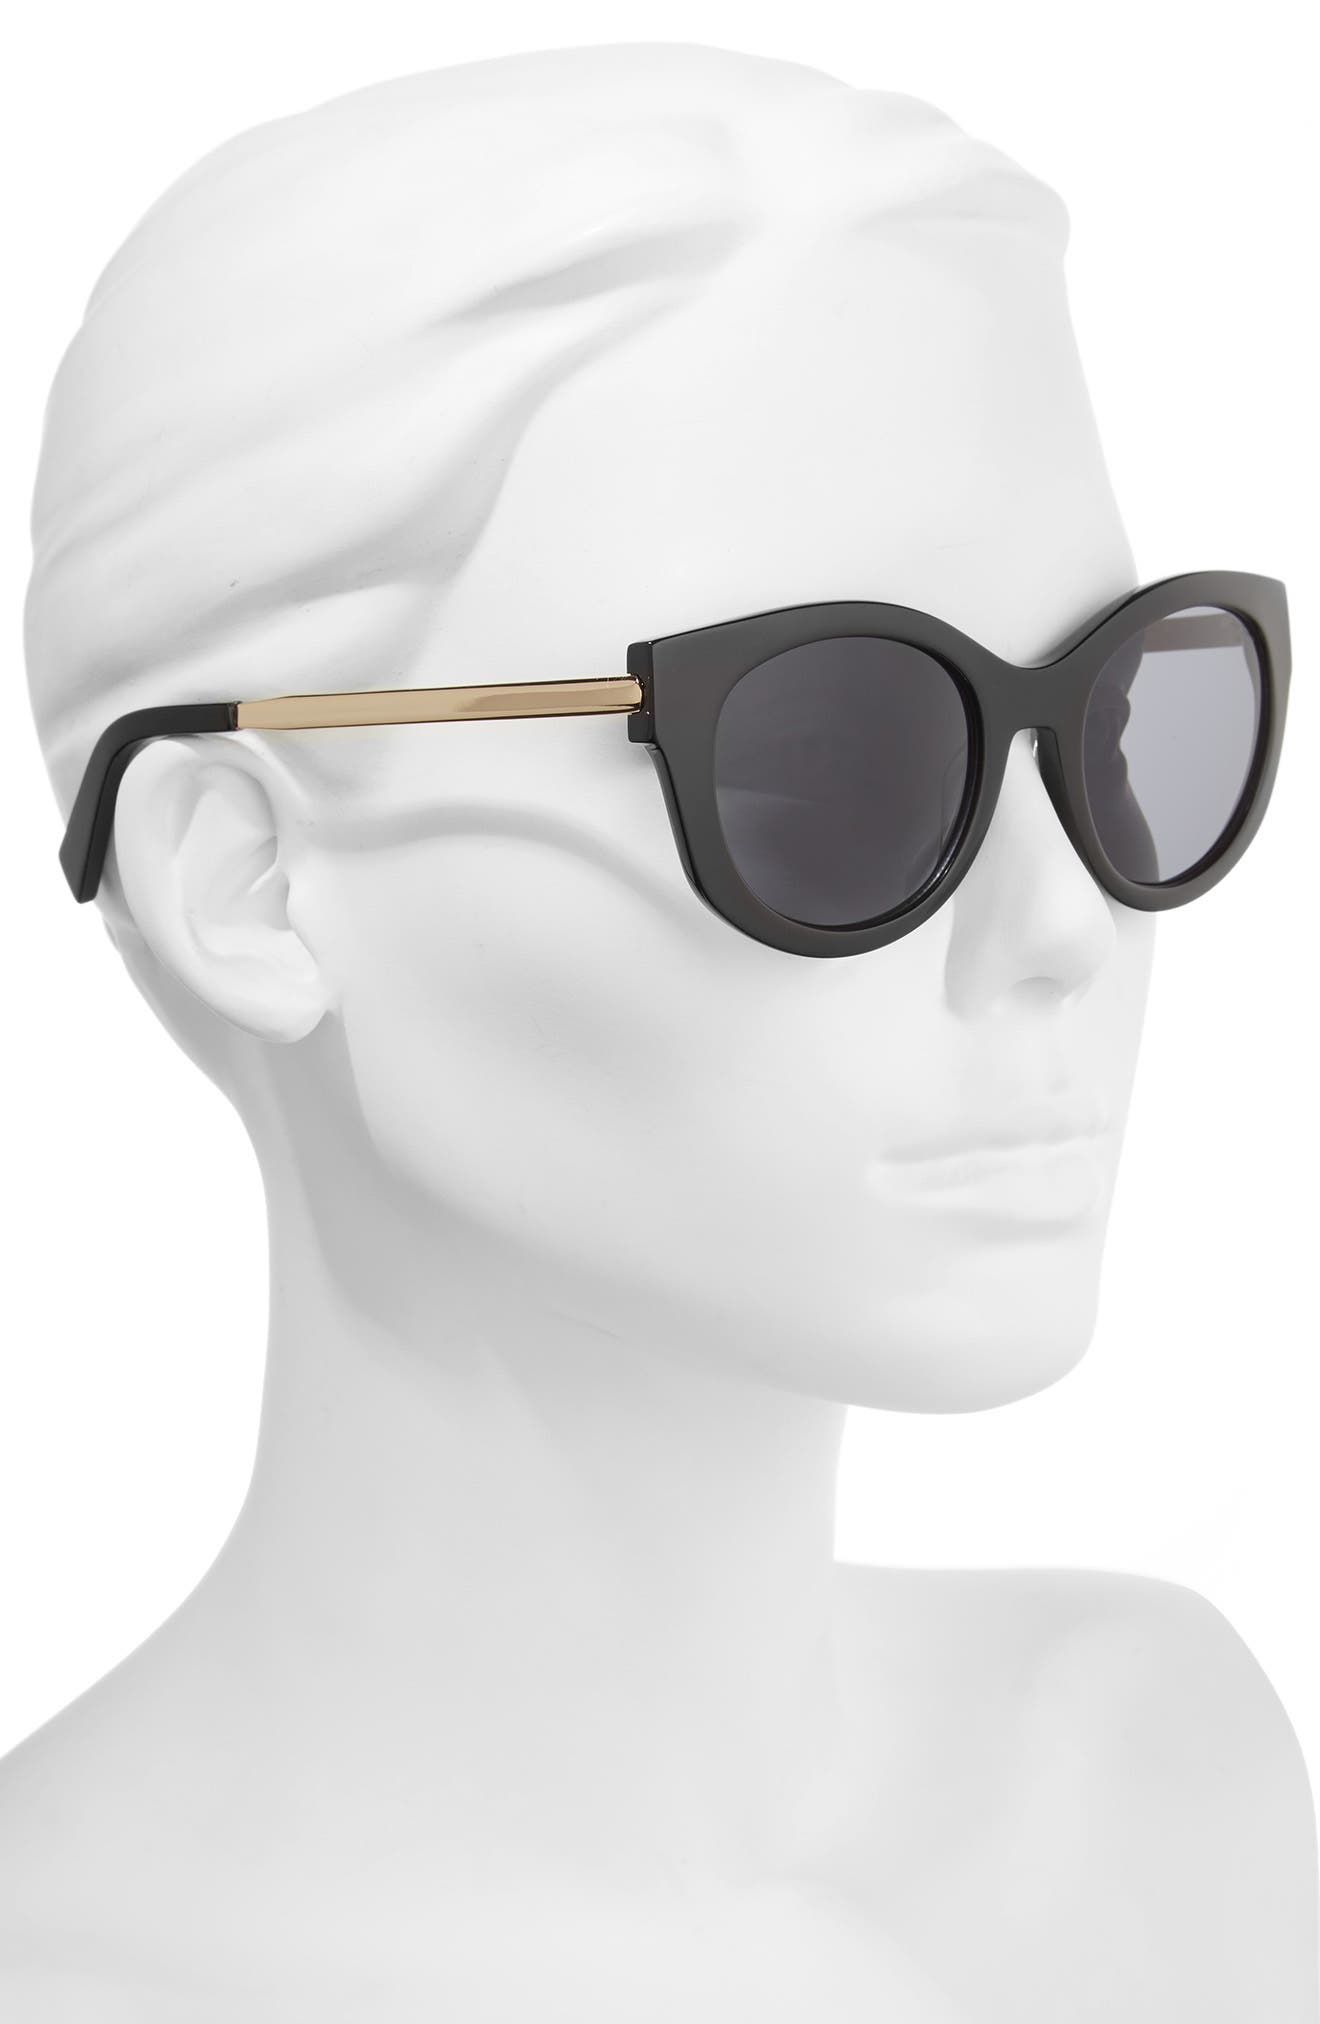 53mm Modified Cat Eye Sunglasses,                             Alternate thumbnail 2, color,                             001